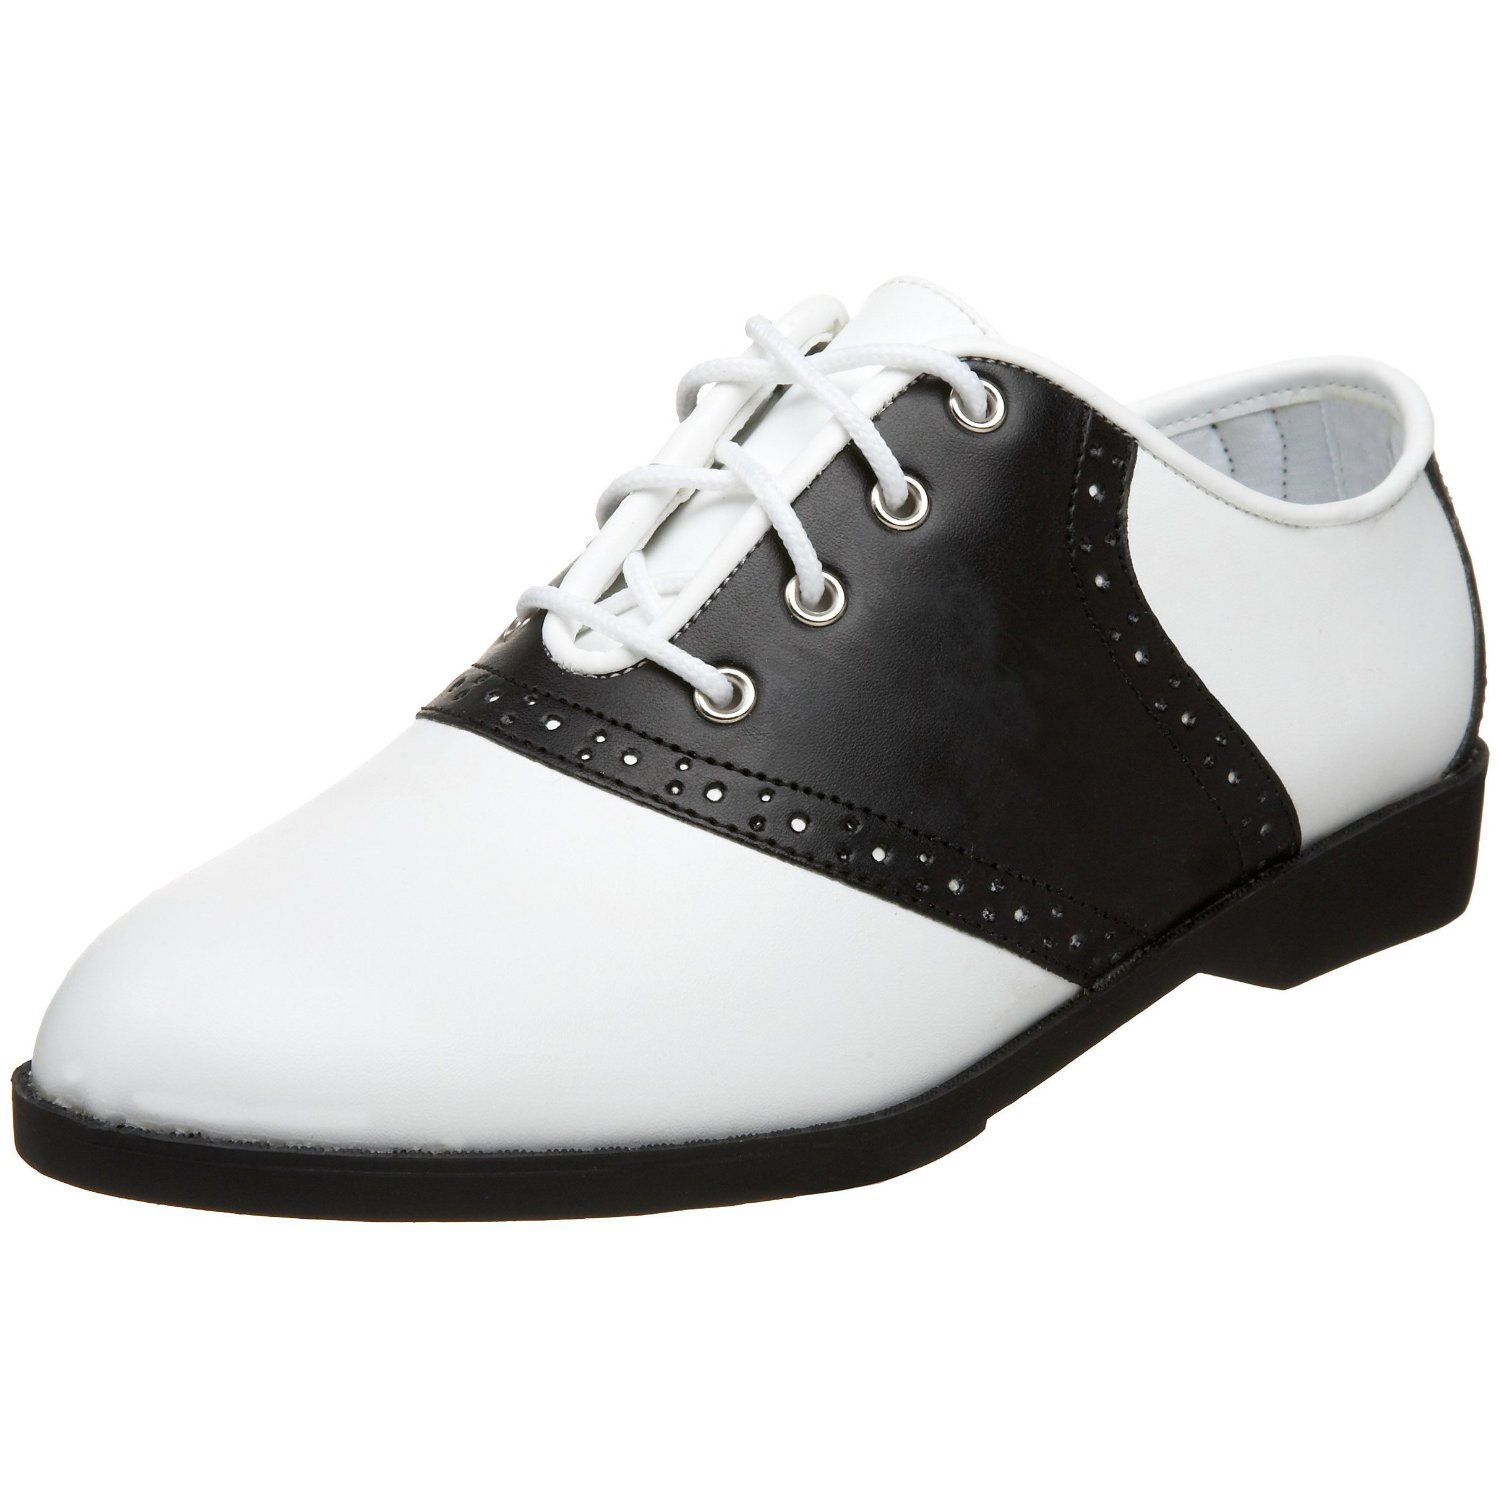 Retro Vintage Flats and Low Heel Shoes Ladies Saddle Shoes 1950s Costume Shoes 1950s Saddle Shoes White/Black $29.88 AT vintagedancer.com